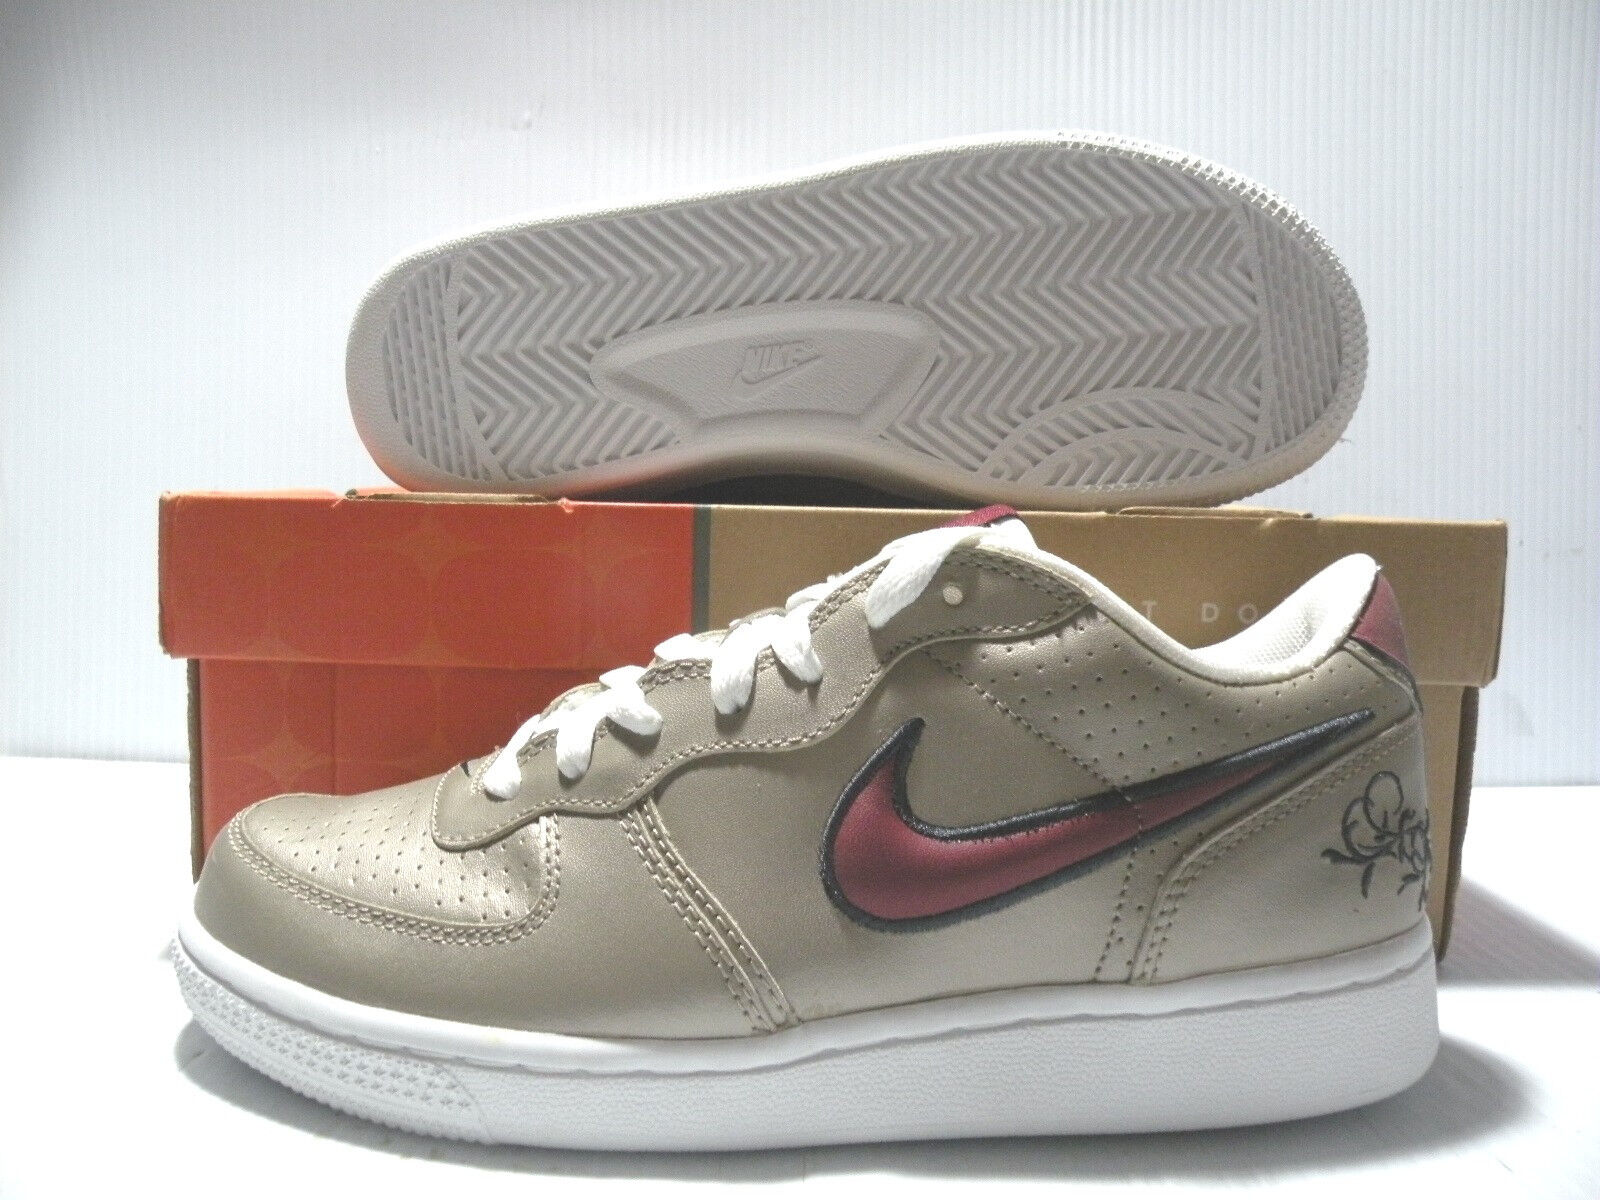 NIKE AIR ZOOM INFILTRATOR LOW SNEAKERS WOMEN SHOES 311891-061 SIZE 9 NEW